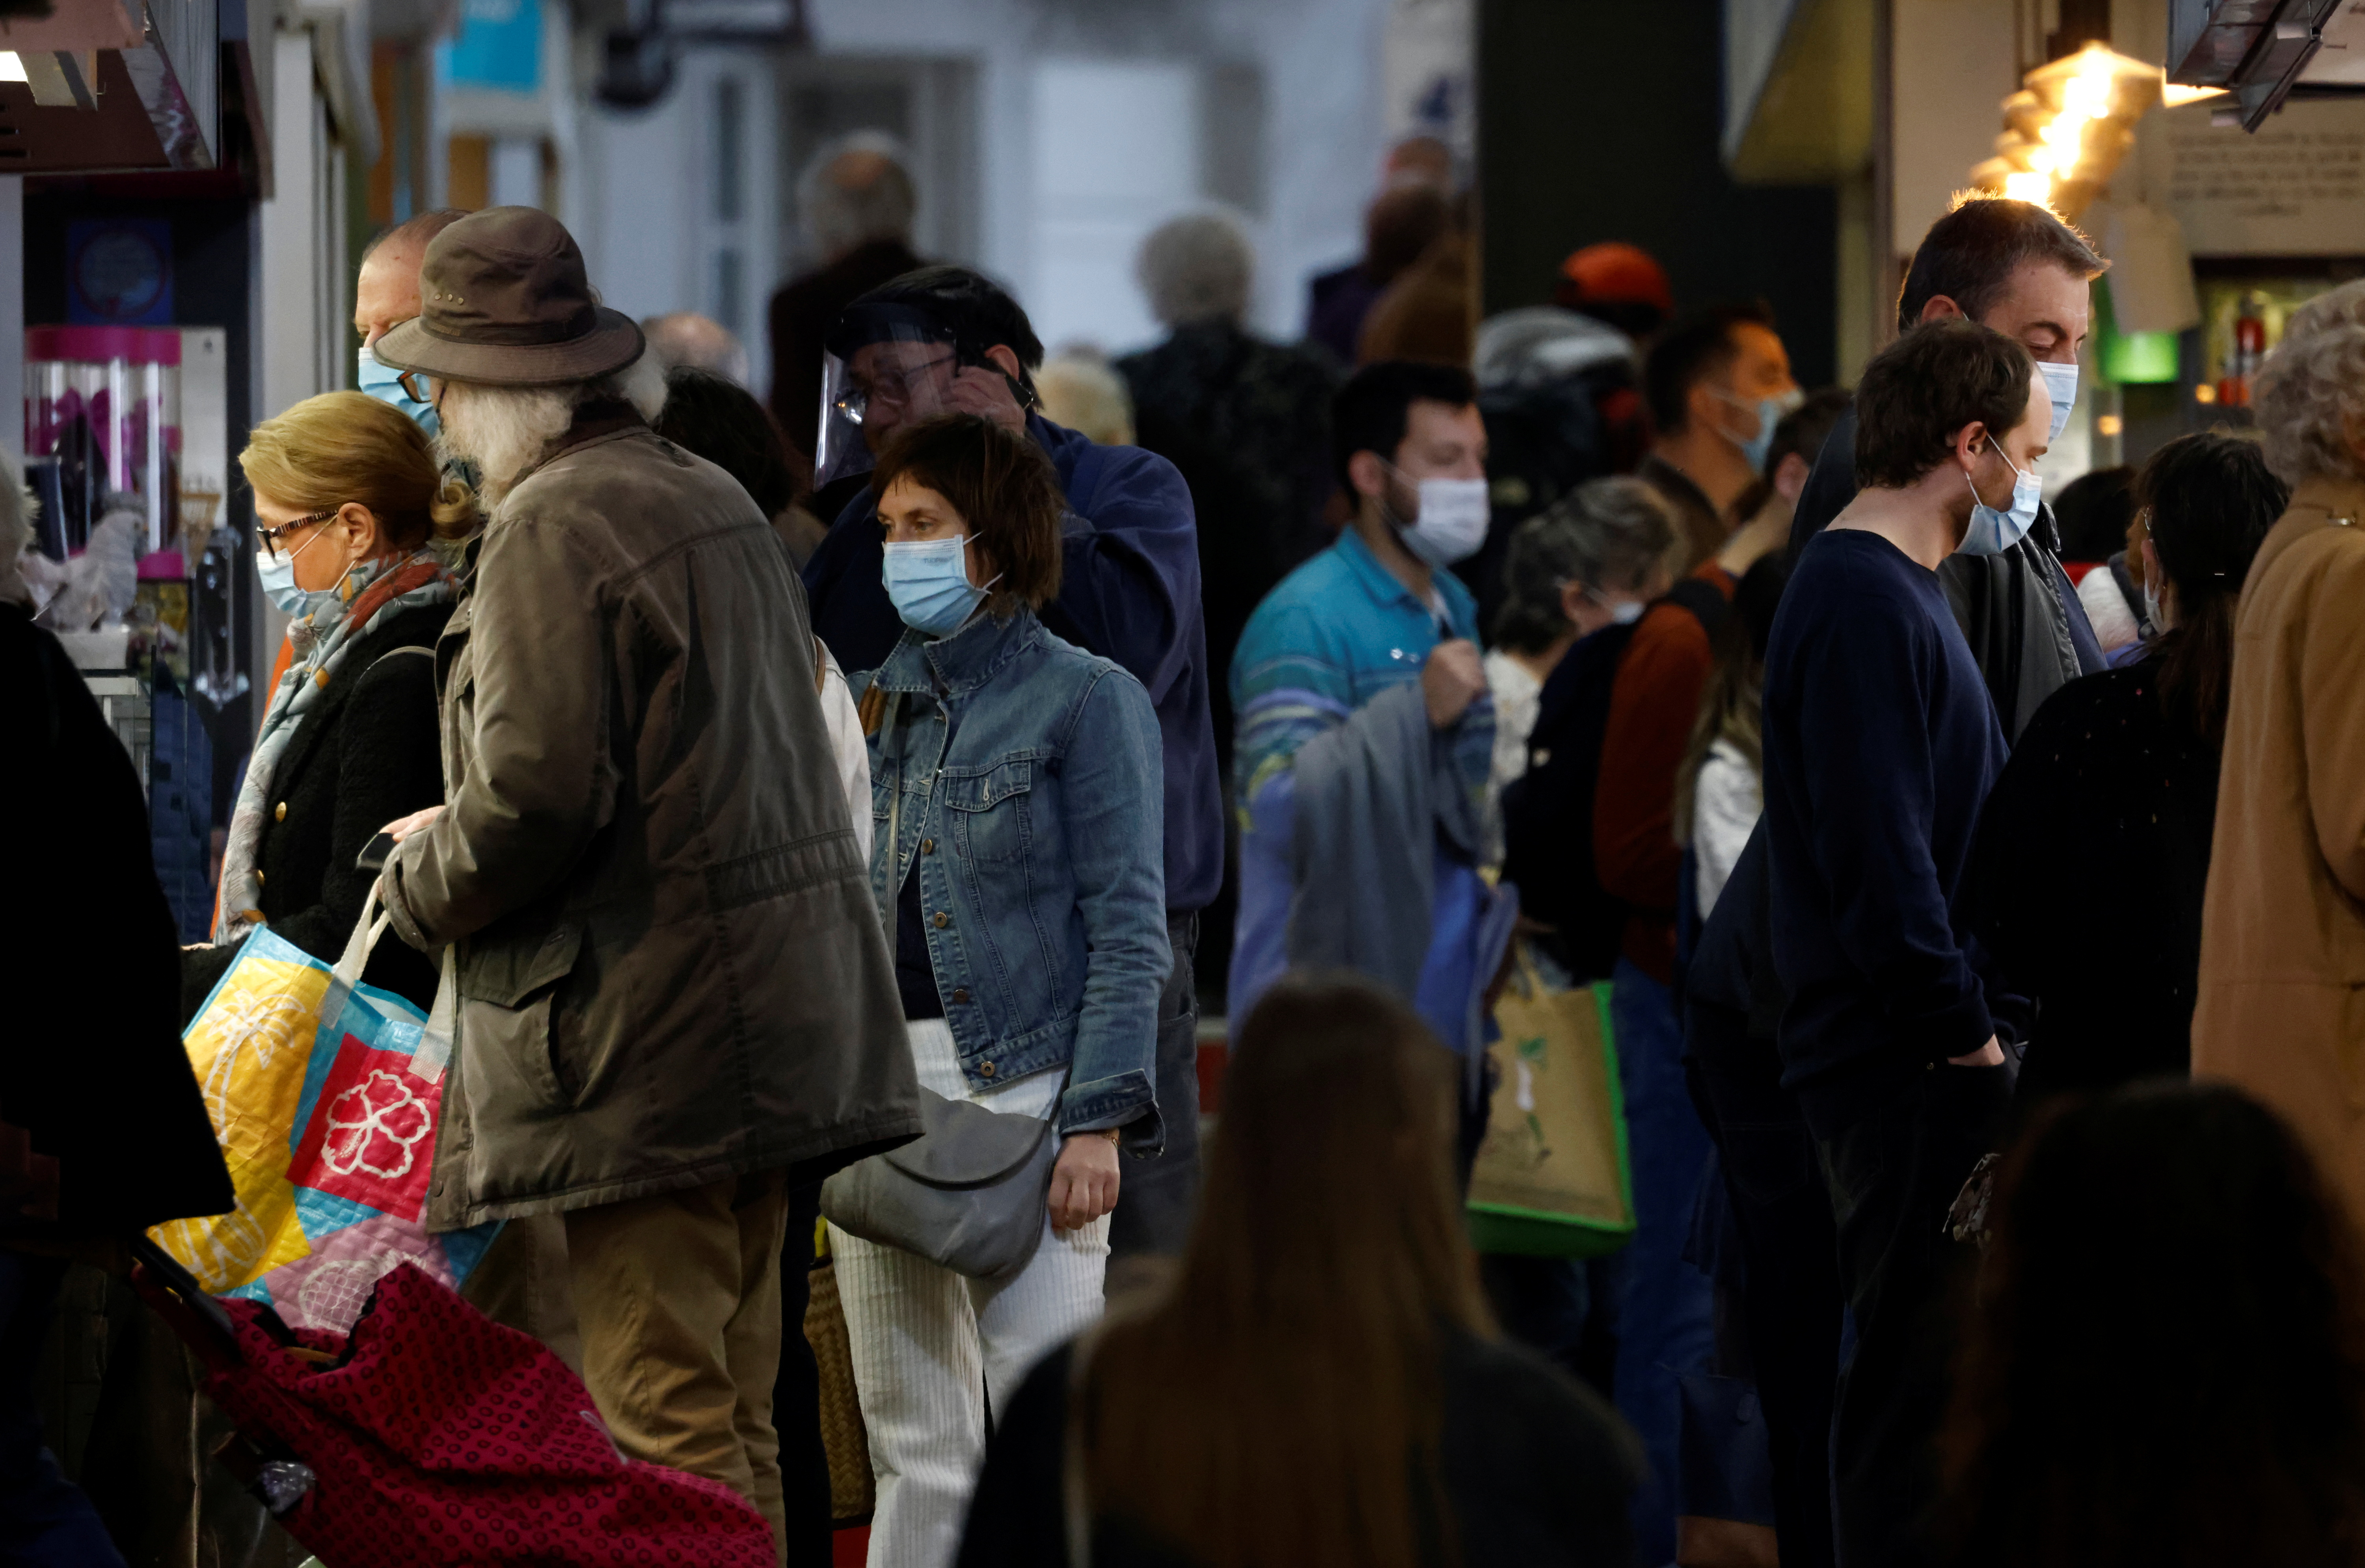 People, wearing protective face masks, shop at a local market in Nantes amid the coronavirus disease (COVID-19) outbreak in France, April 1, 2021. REUTERS/Stephane Mahe